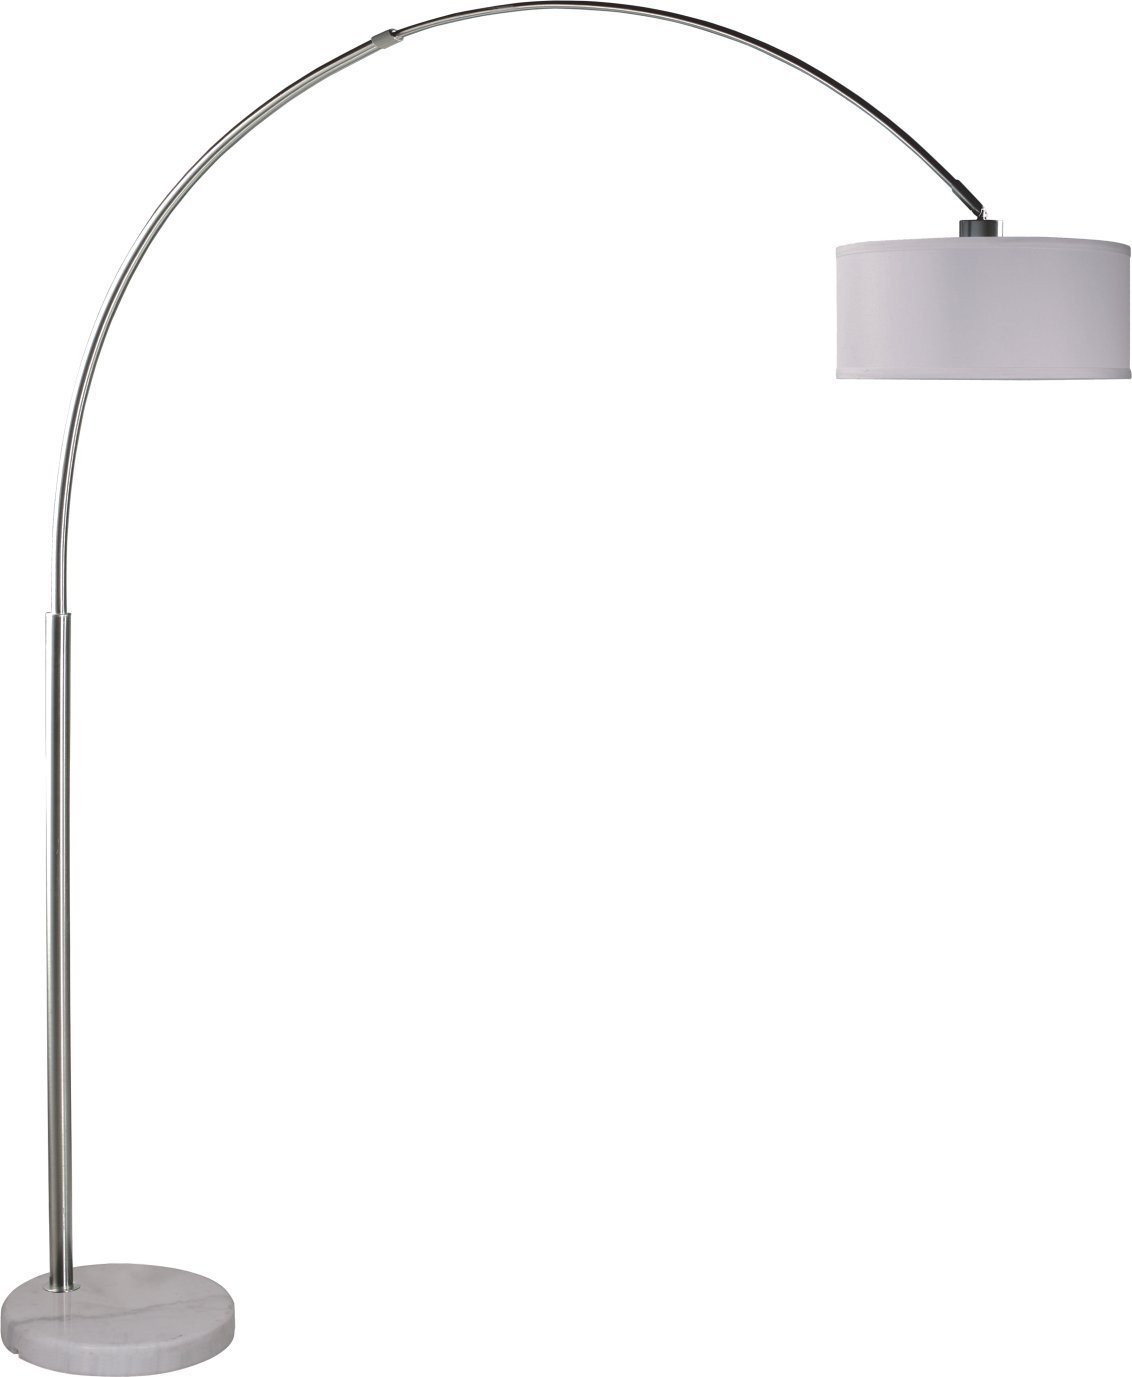 Major-Q Modern Fishing Pole Arch Floor Lamp Marble Base (6938WH-1) by Major-Q